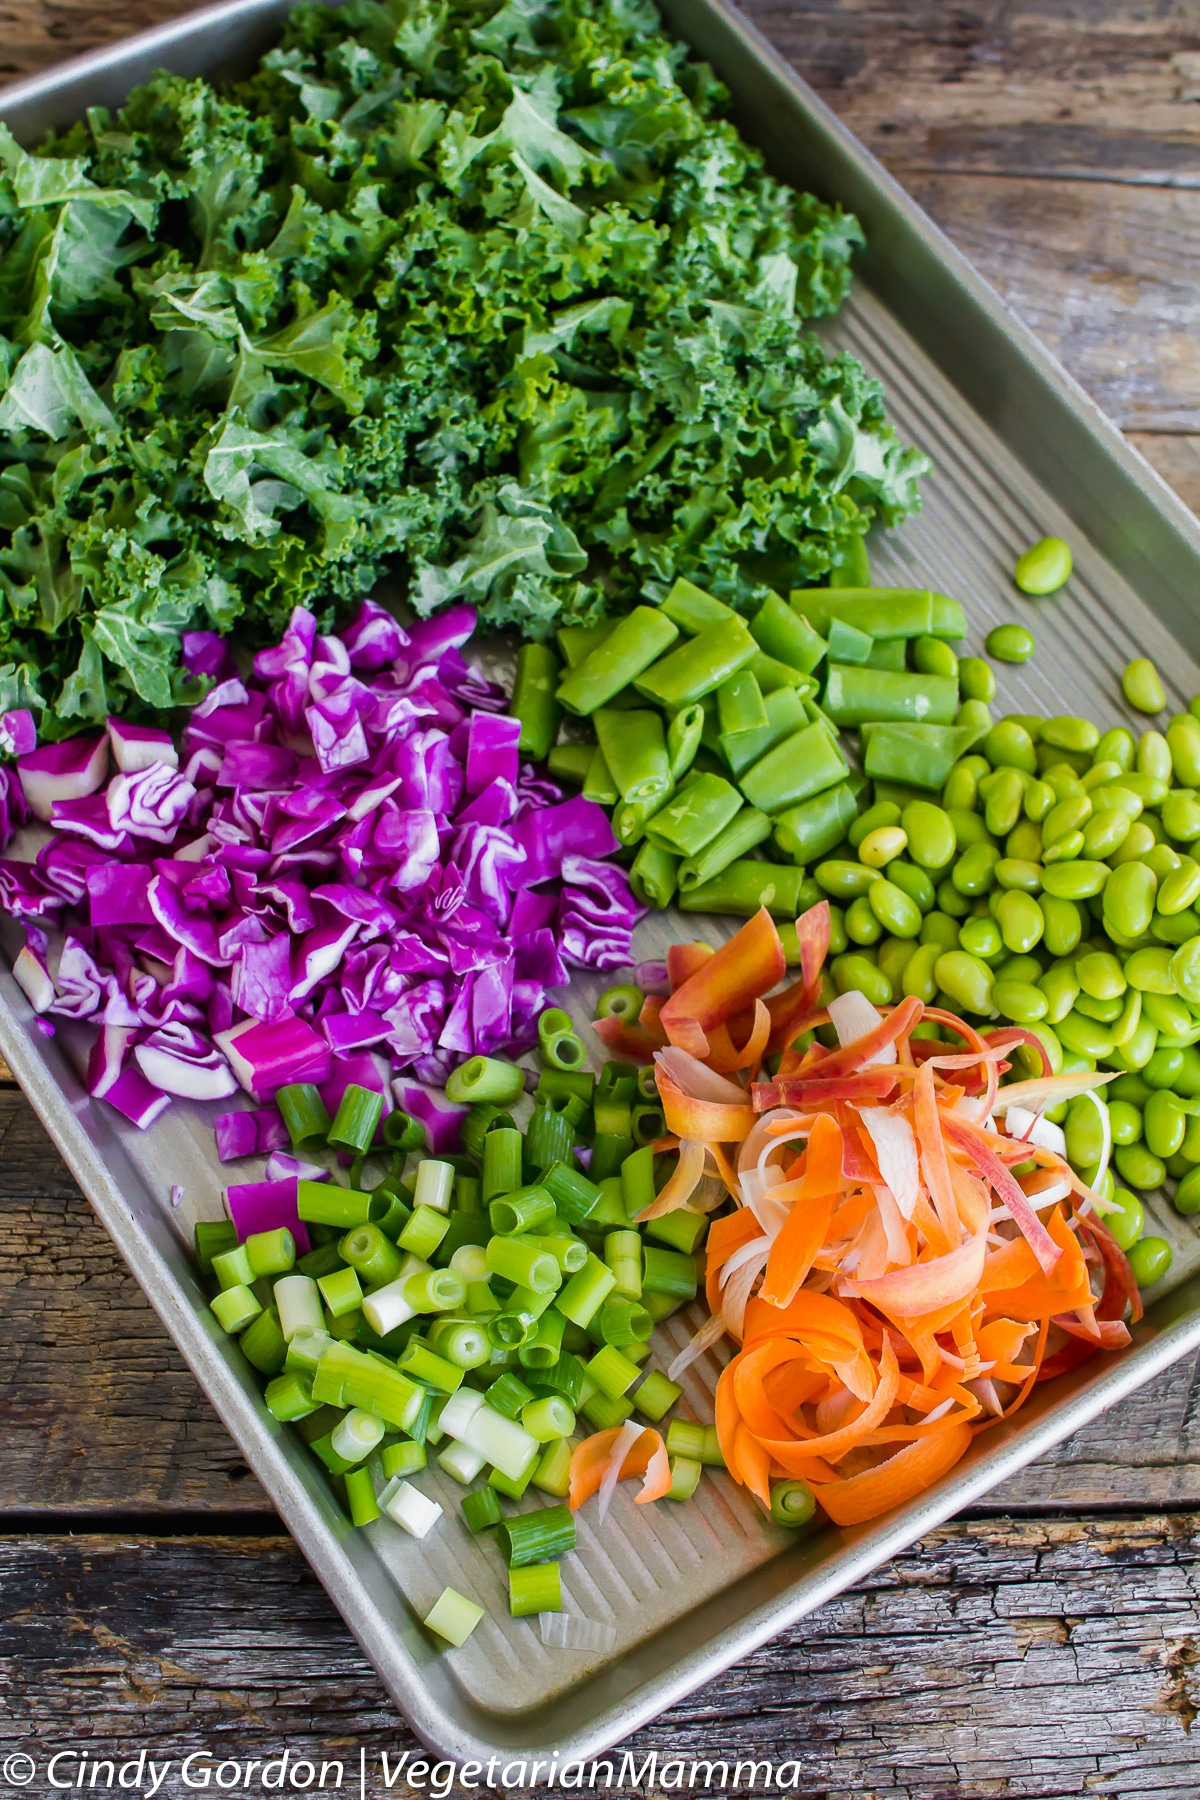 Colorful ingredients of inspired thai kale salad